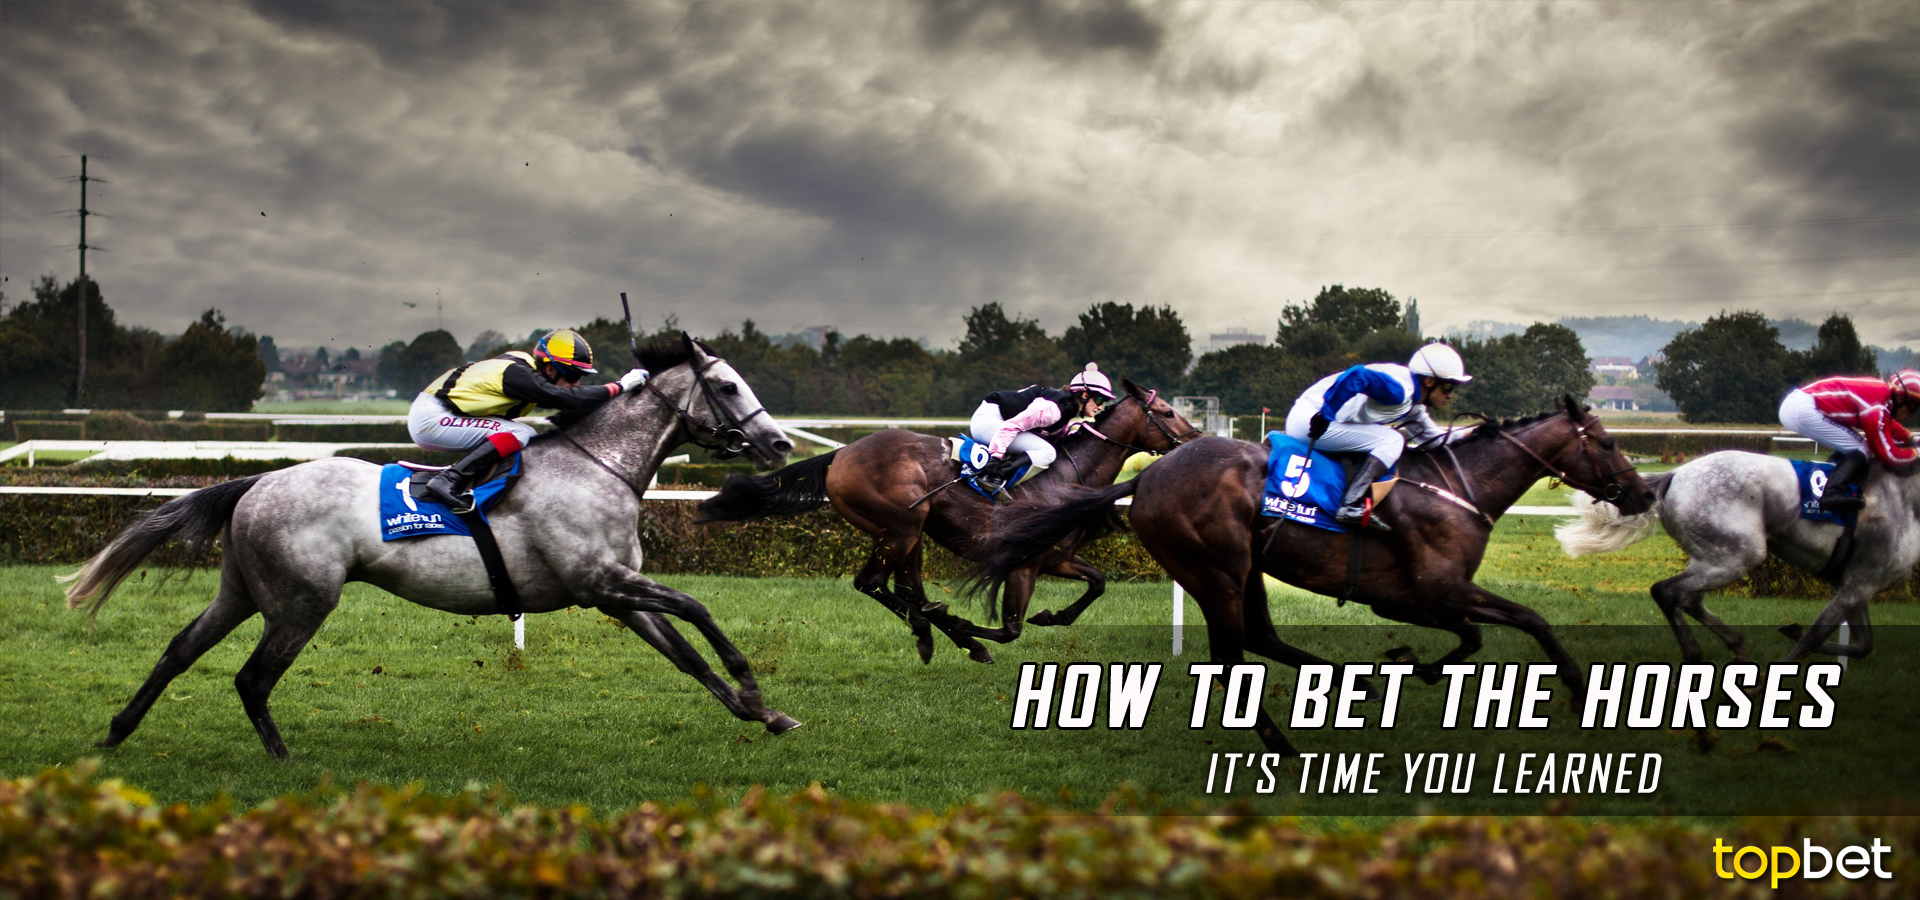 How To Bet On Horses And Win